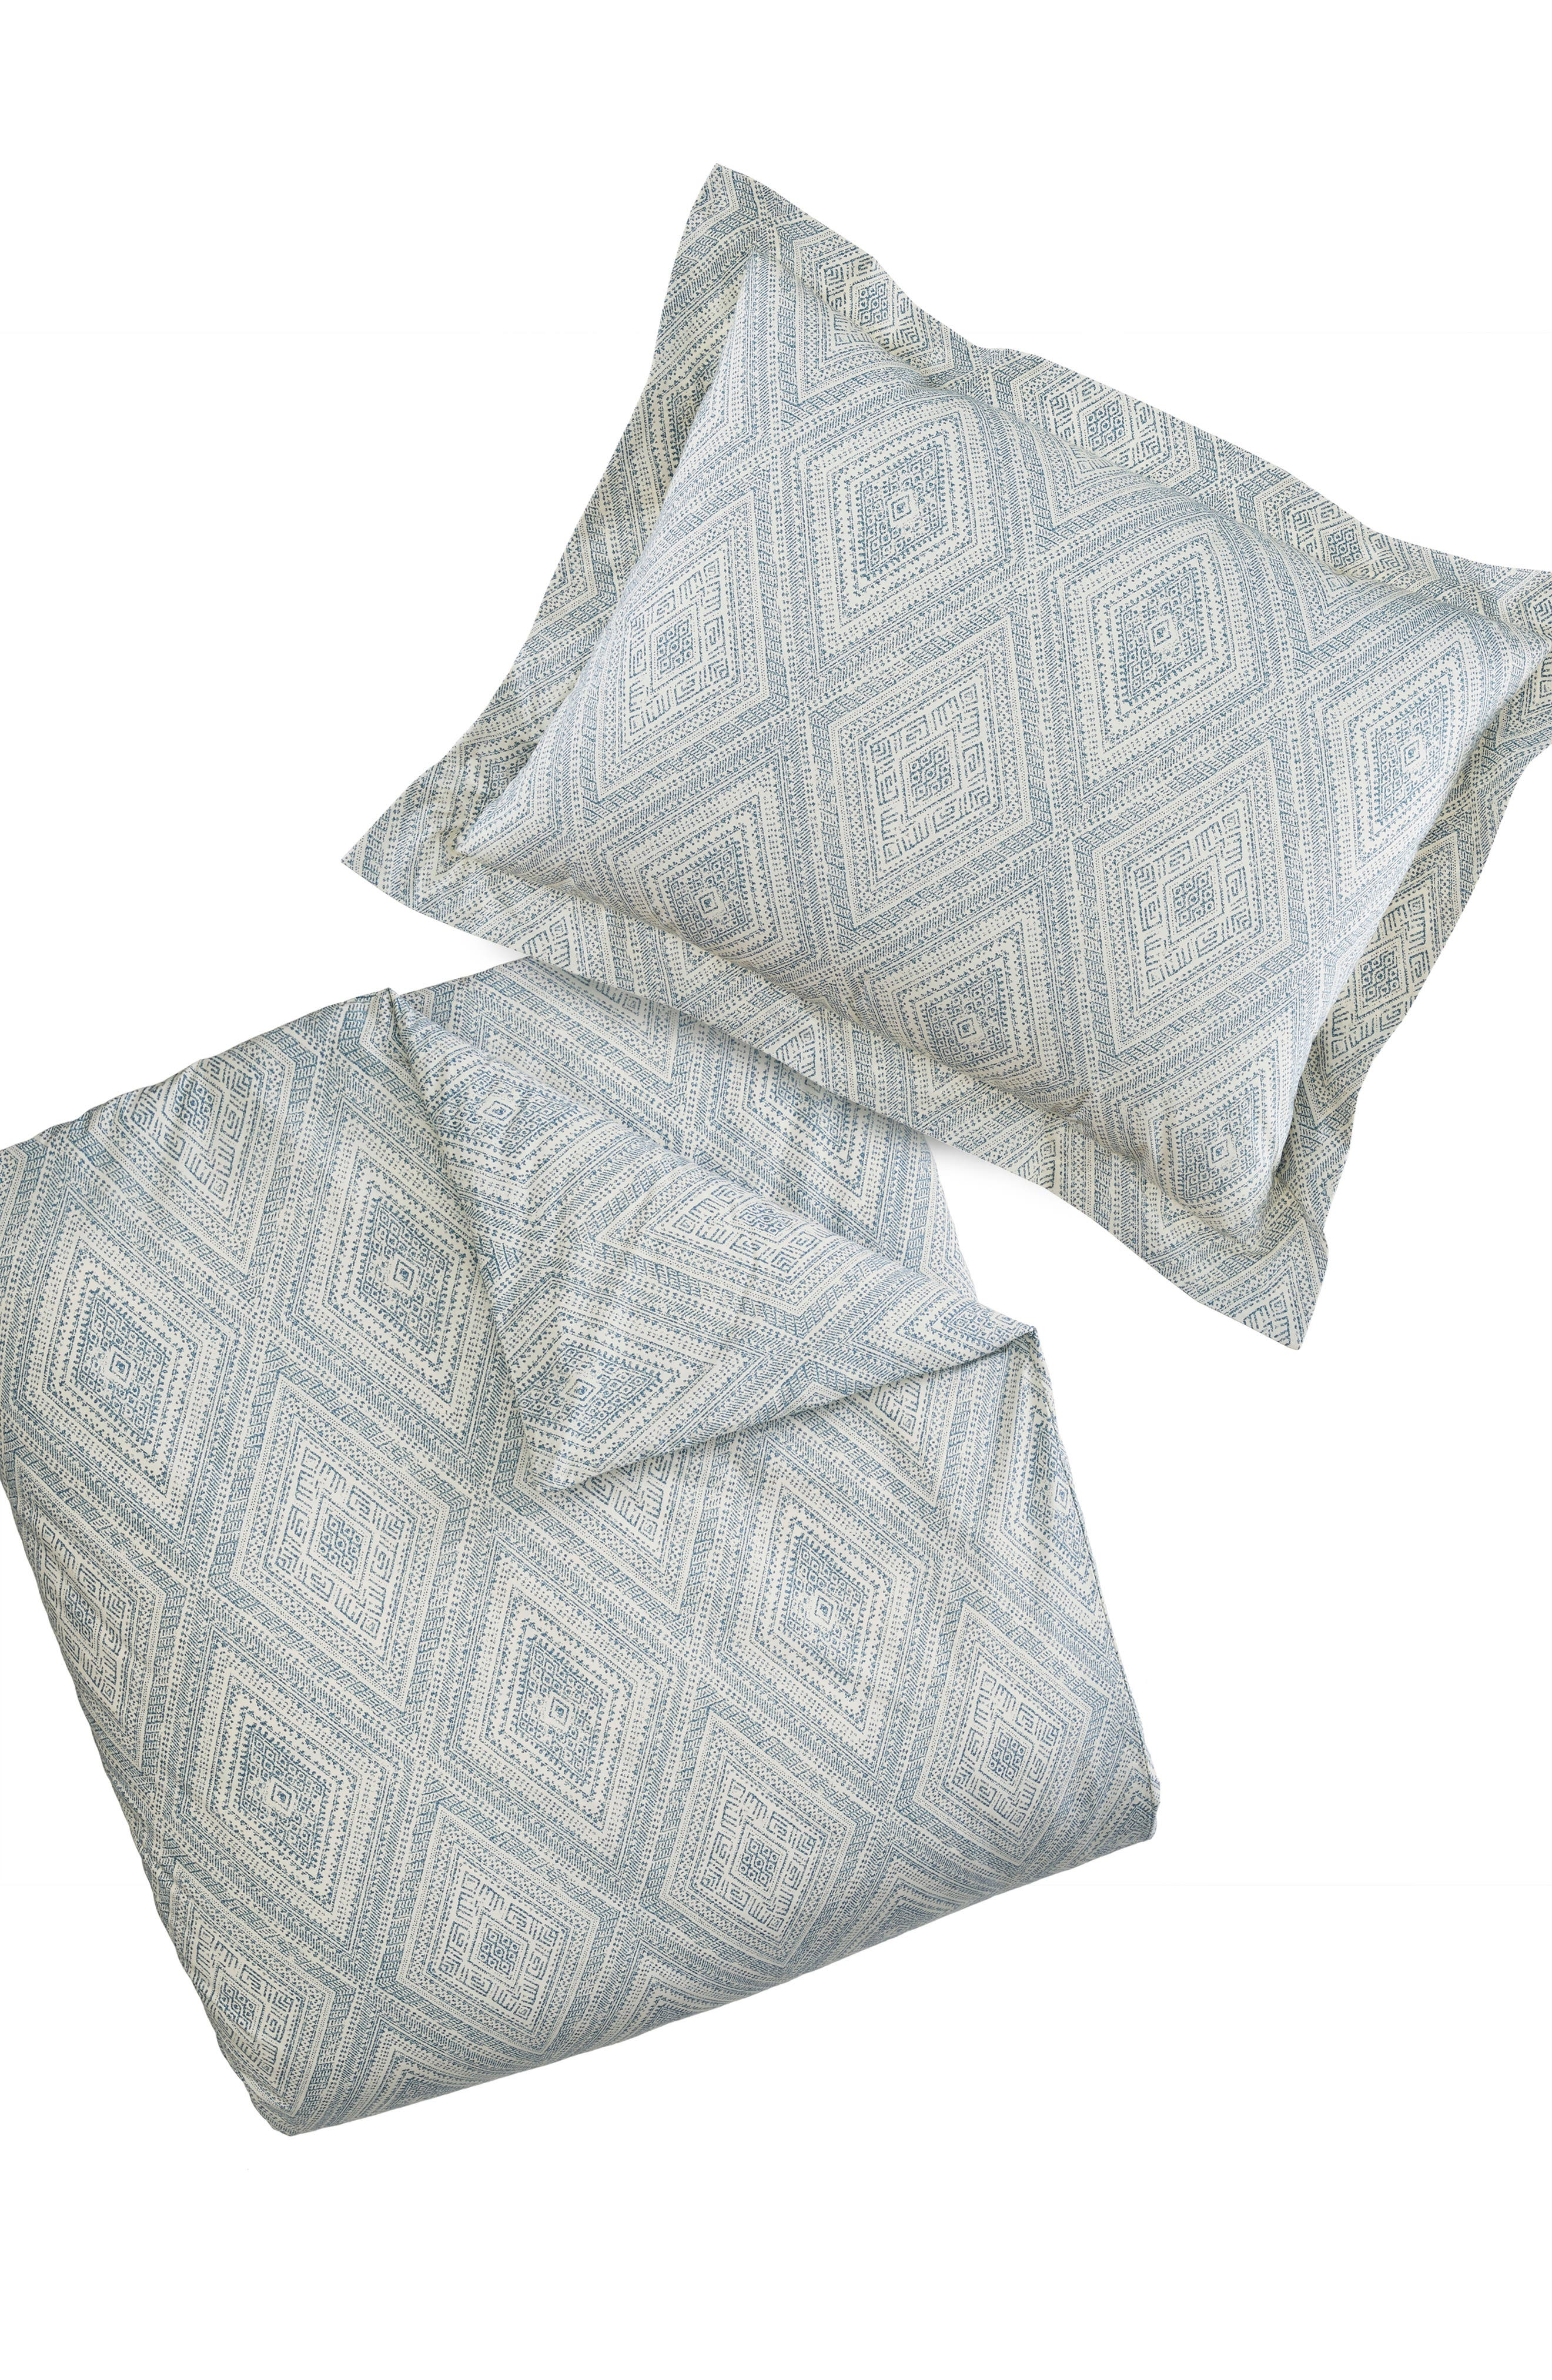 Caspiane 200 Thread Count Pair of Pillow Shams,                             Alternate thumbnail 2, color,